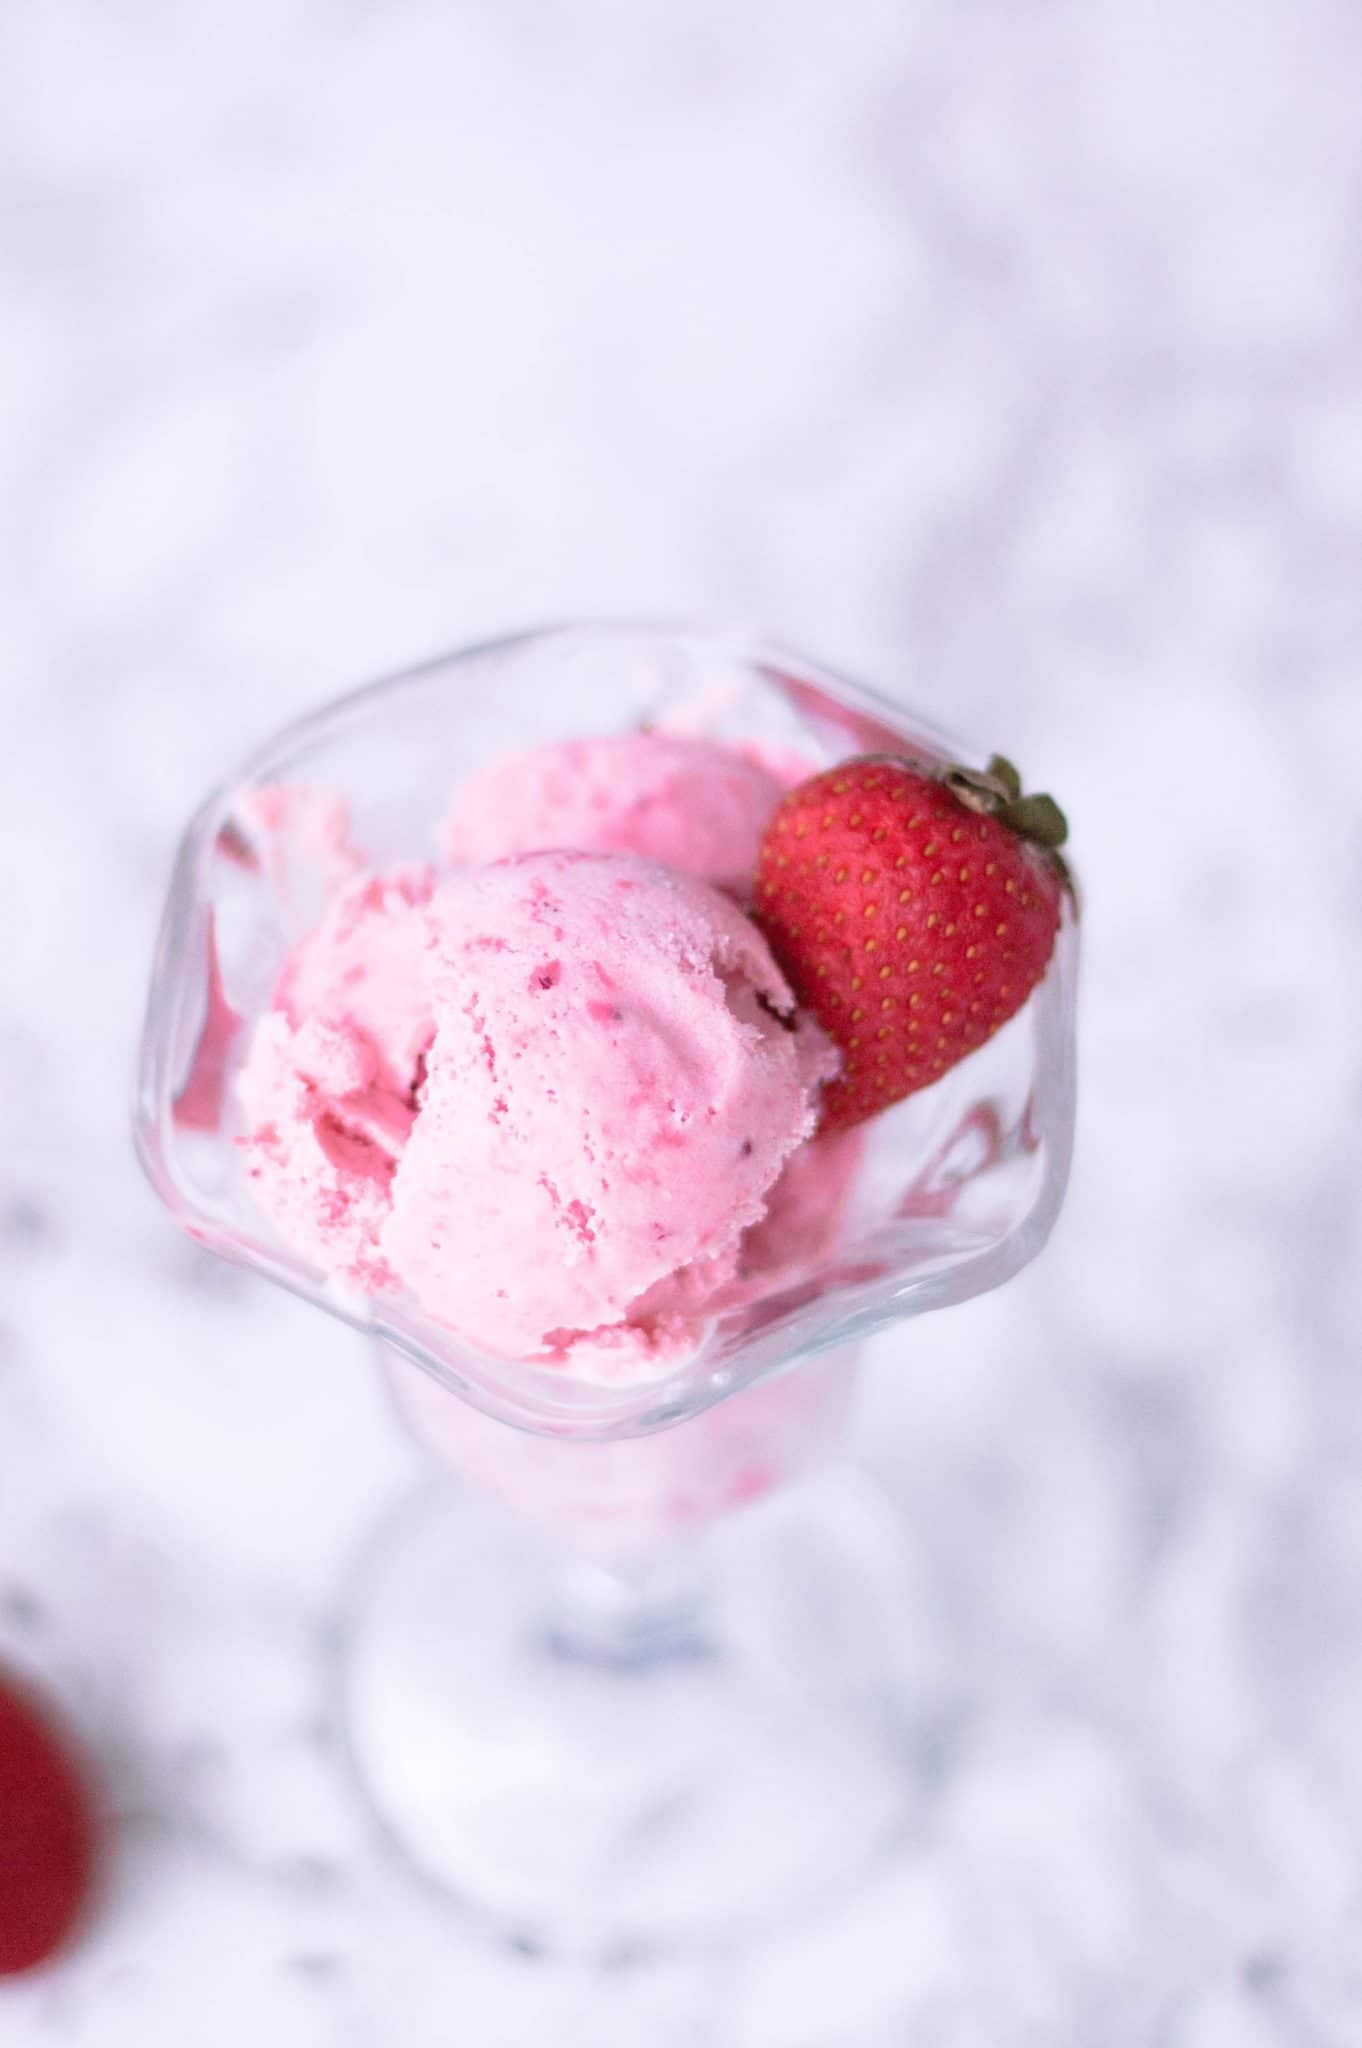 Try this simple, custard-free strawberry lavender ice cream recipe and discover your new favorite treat. It's bright, refreshing, and full of summer flavors.